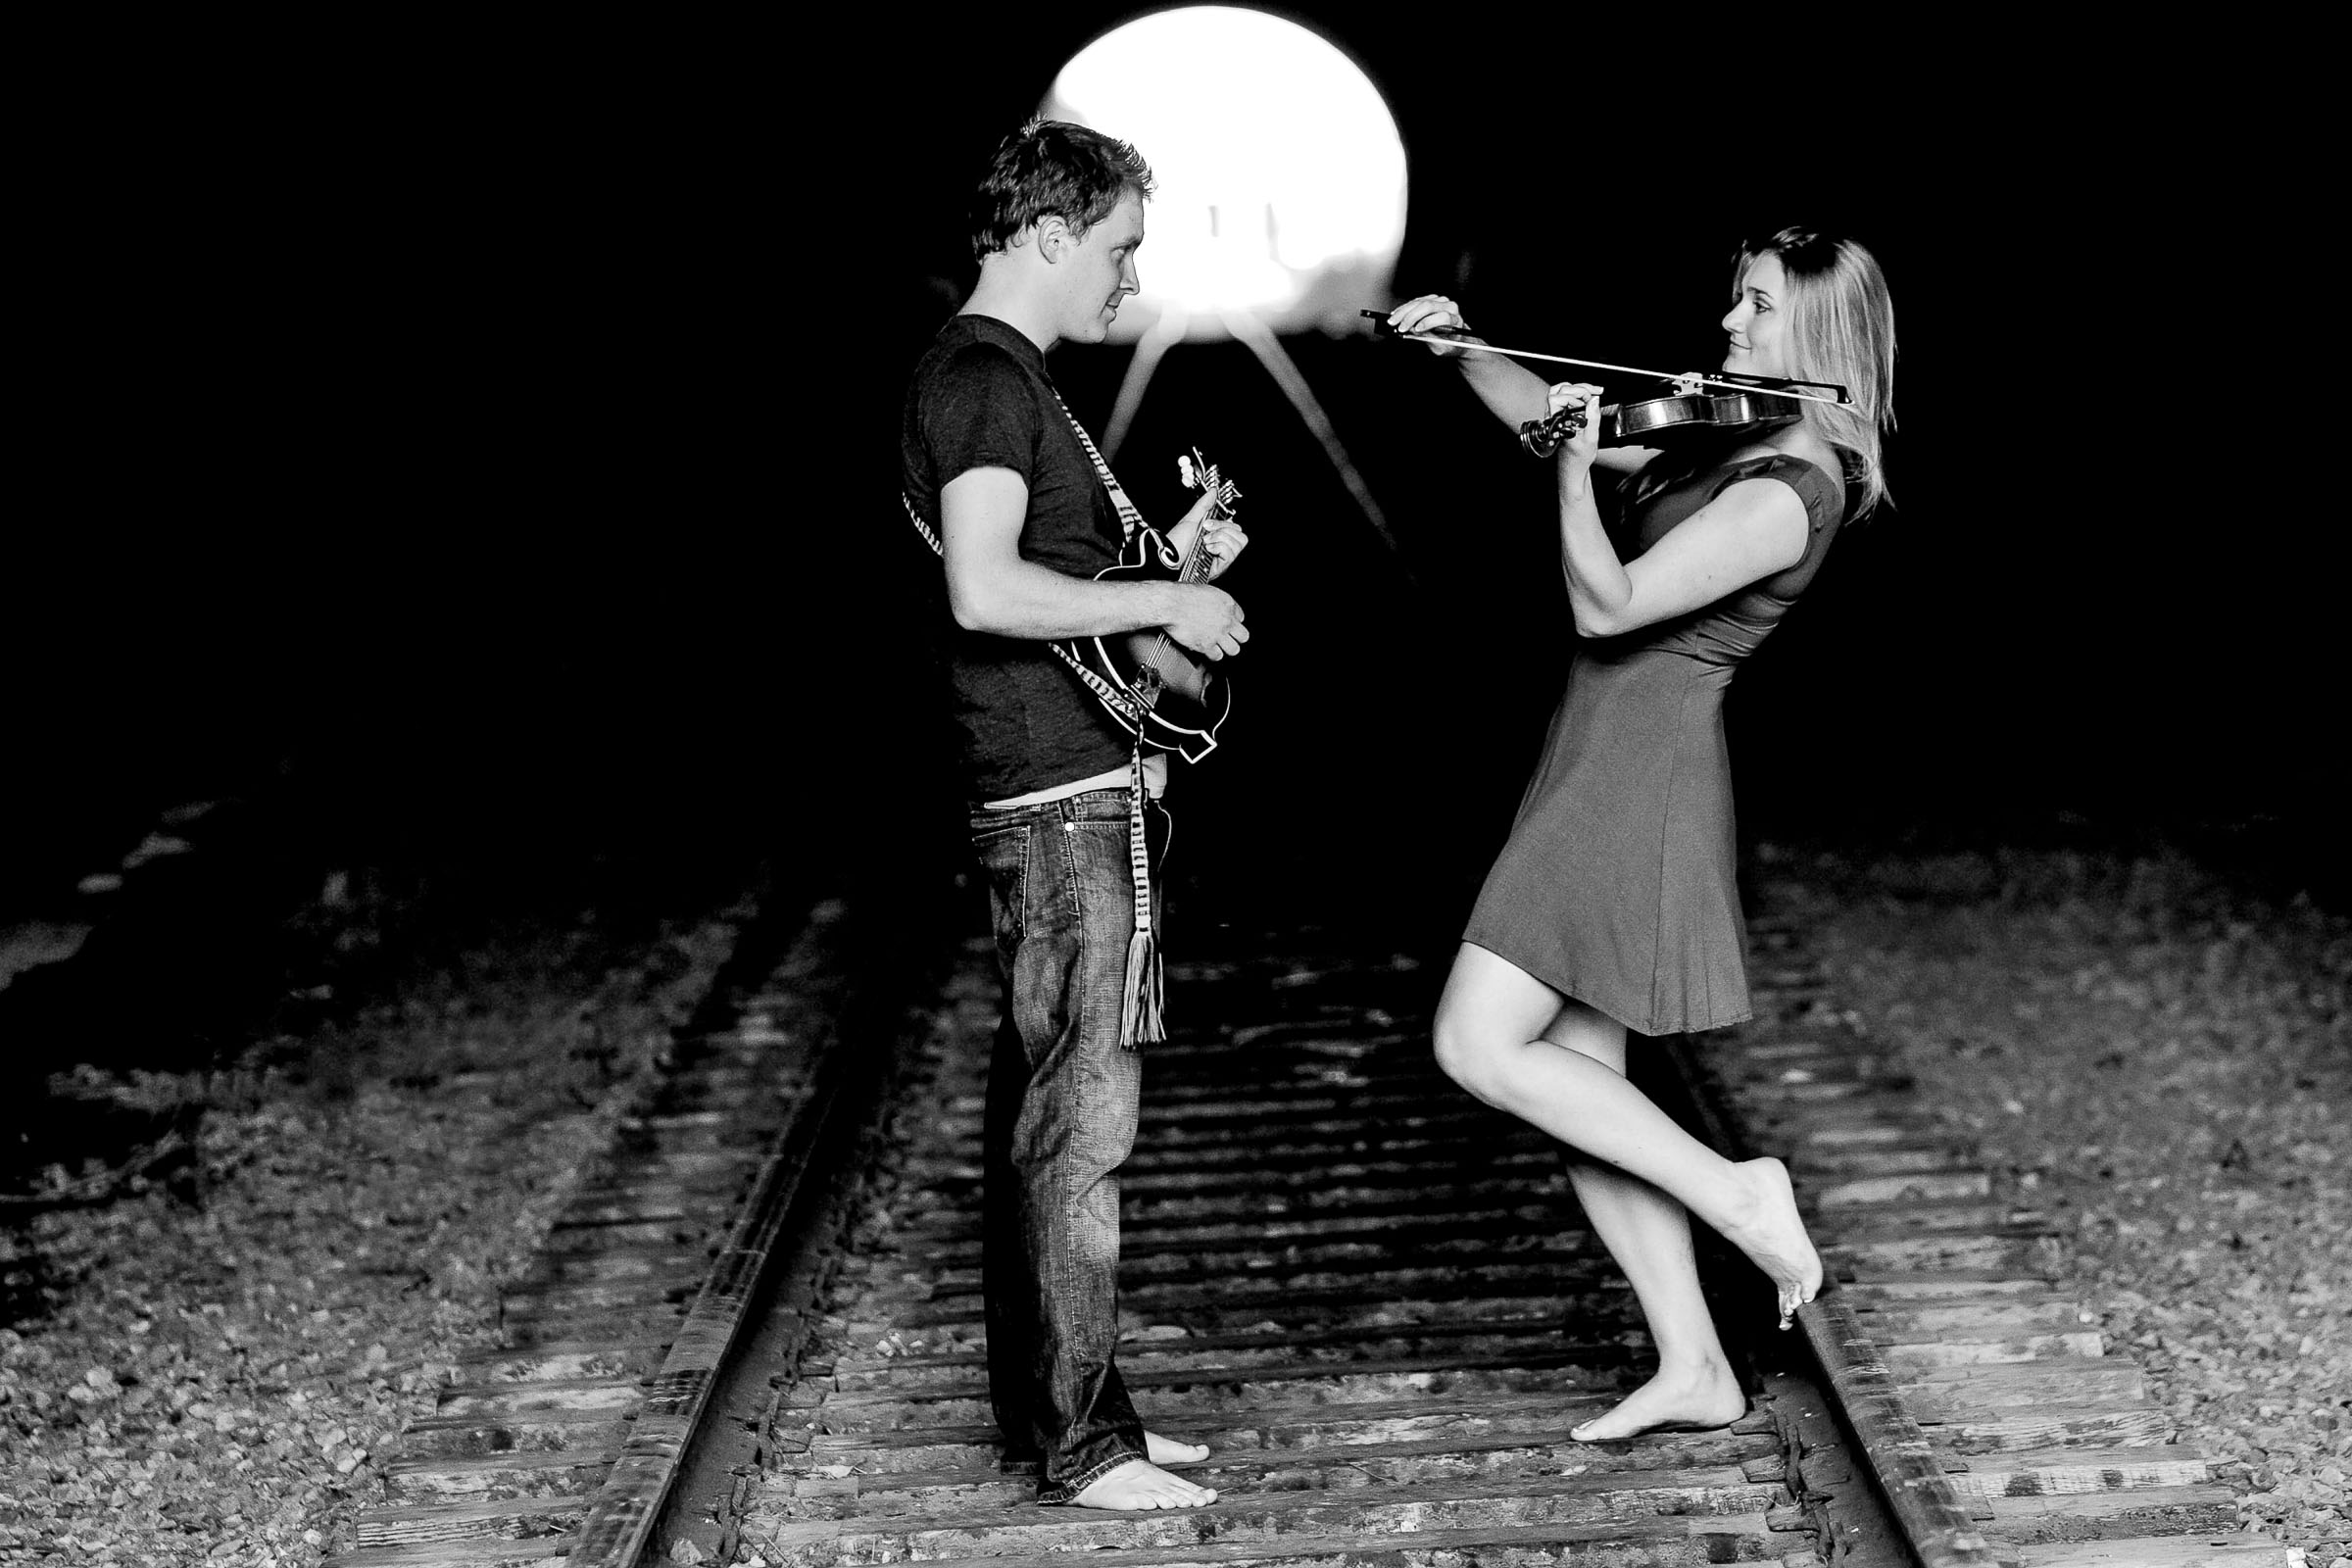 Engagement photo in San Francisco tunnel with a violin and a mandolin. Fun captivating photo.